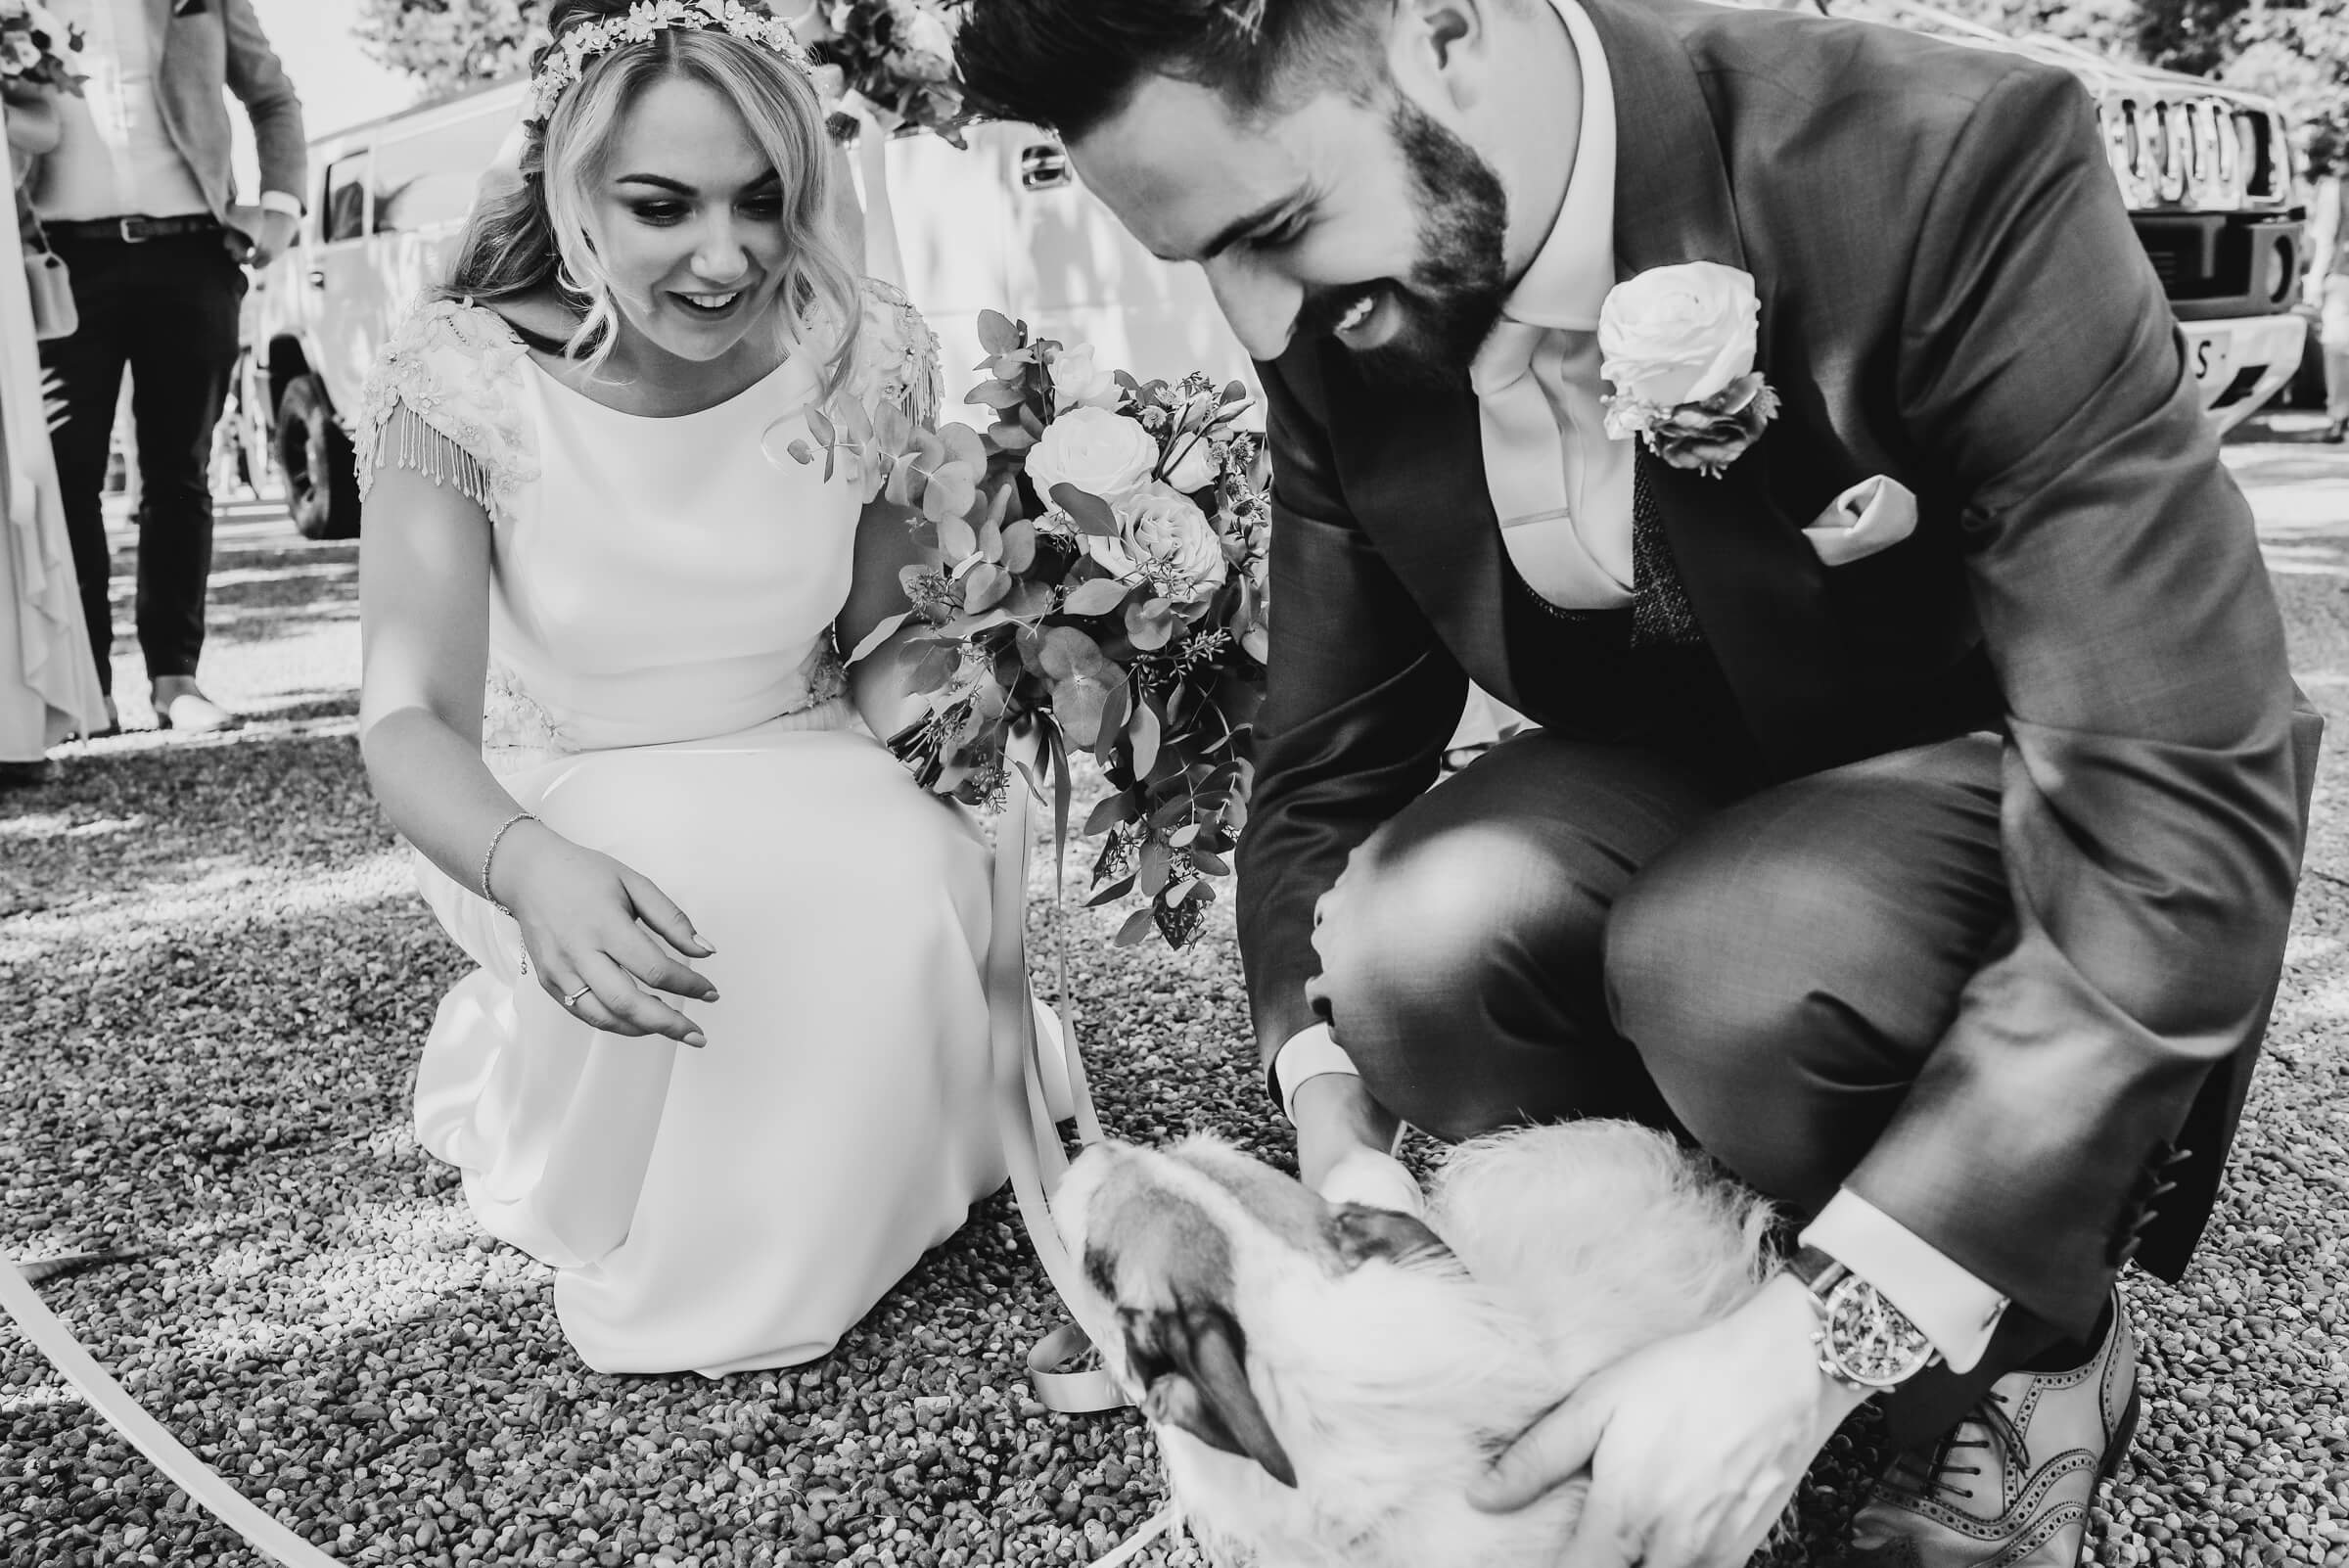 bride and groom stroking their dog at wedding venue